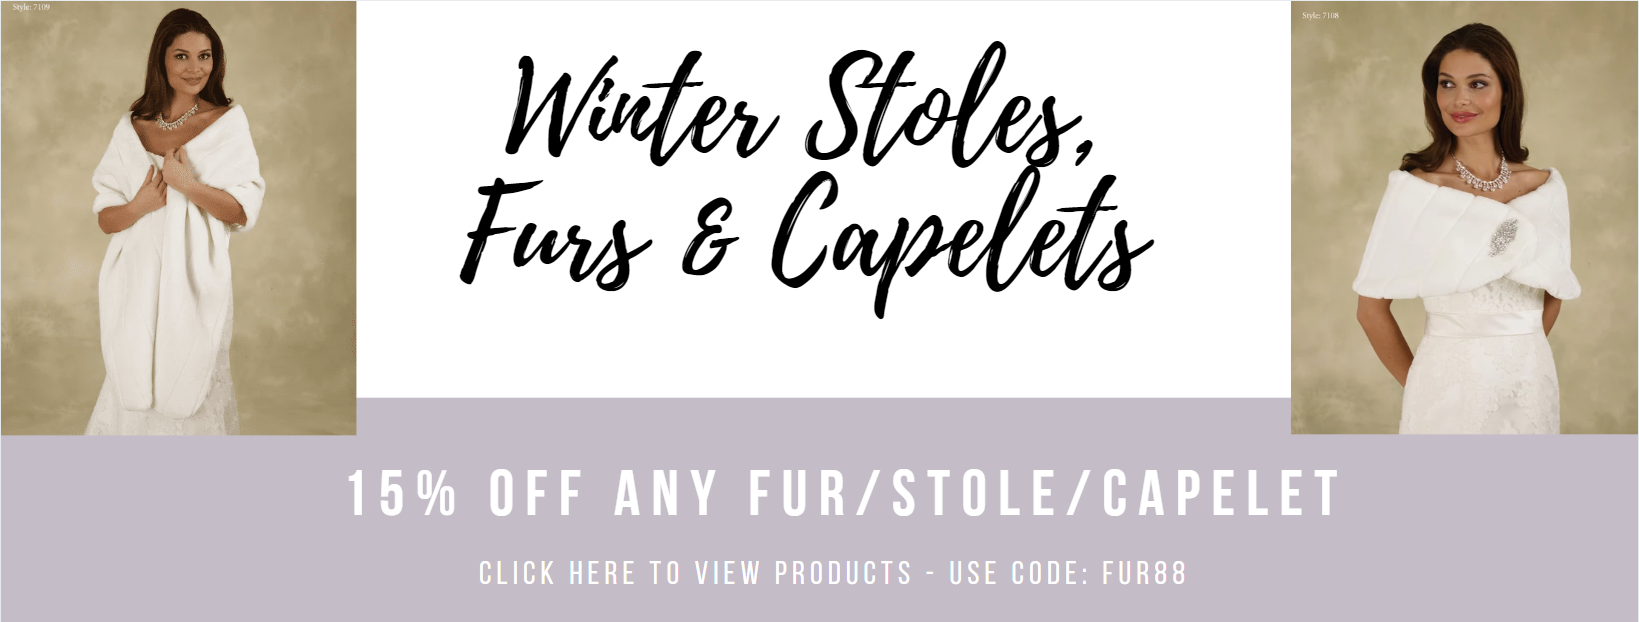 winterfurs-winter-stoles-bridal-furs-wedding-furs-wedding-capelets.png